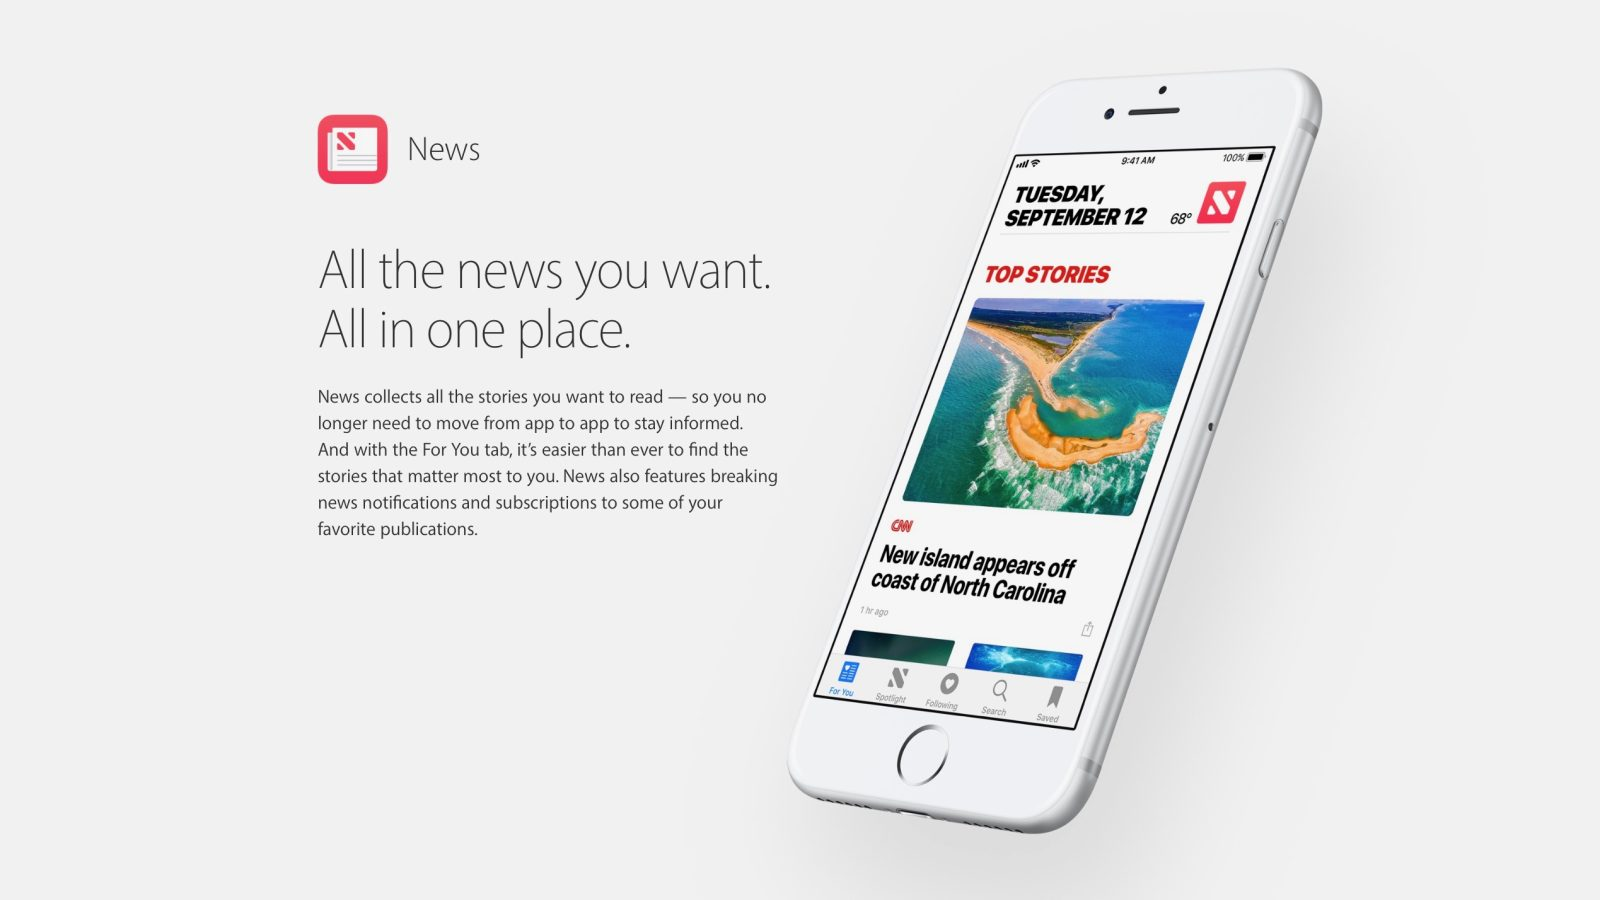 Apple News: Features, News, Rumors, Pricing, etc  - 9to5Mac